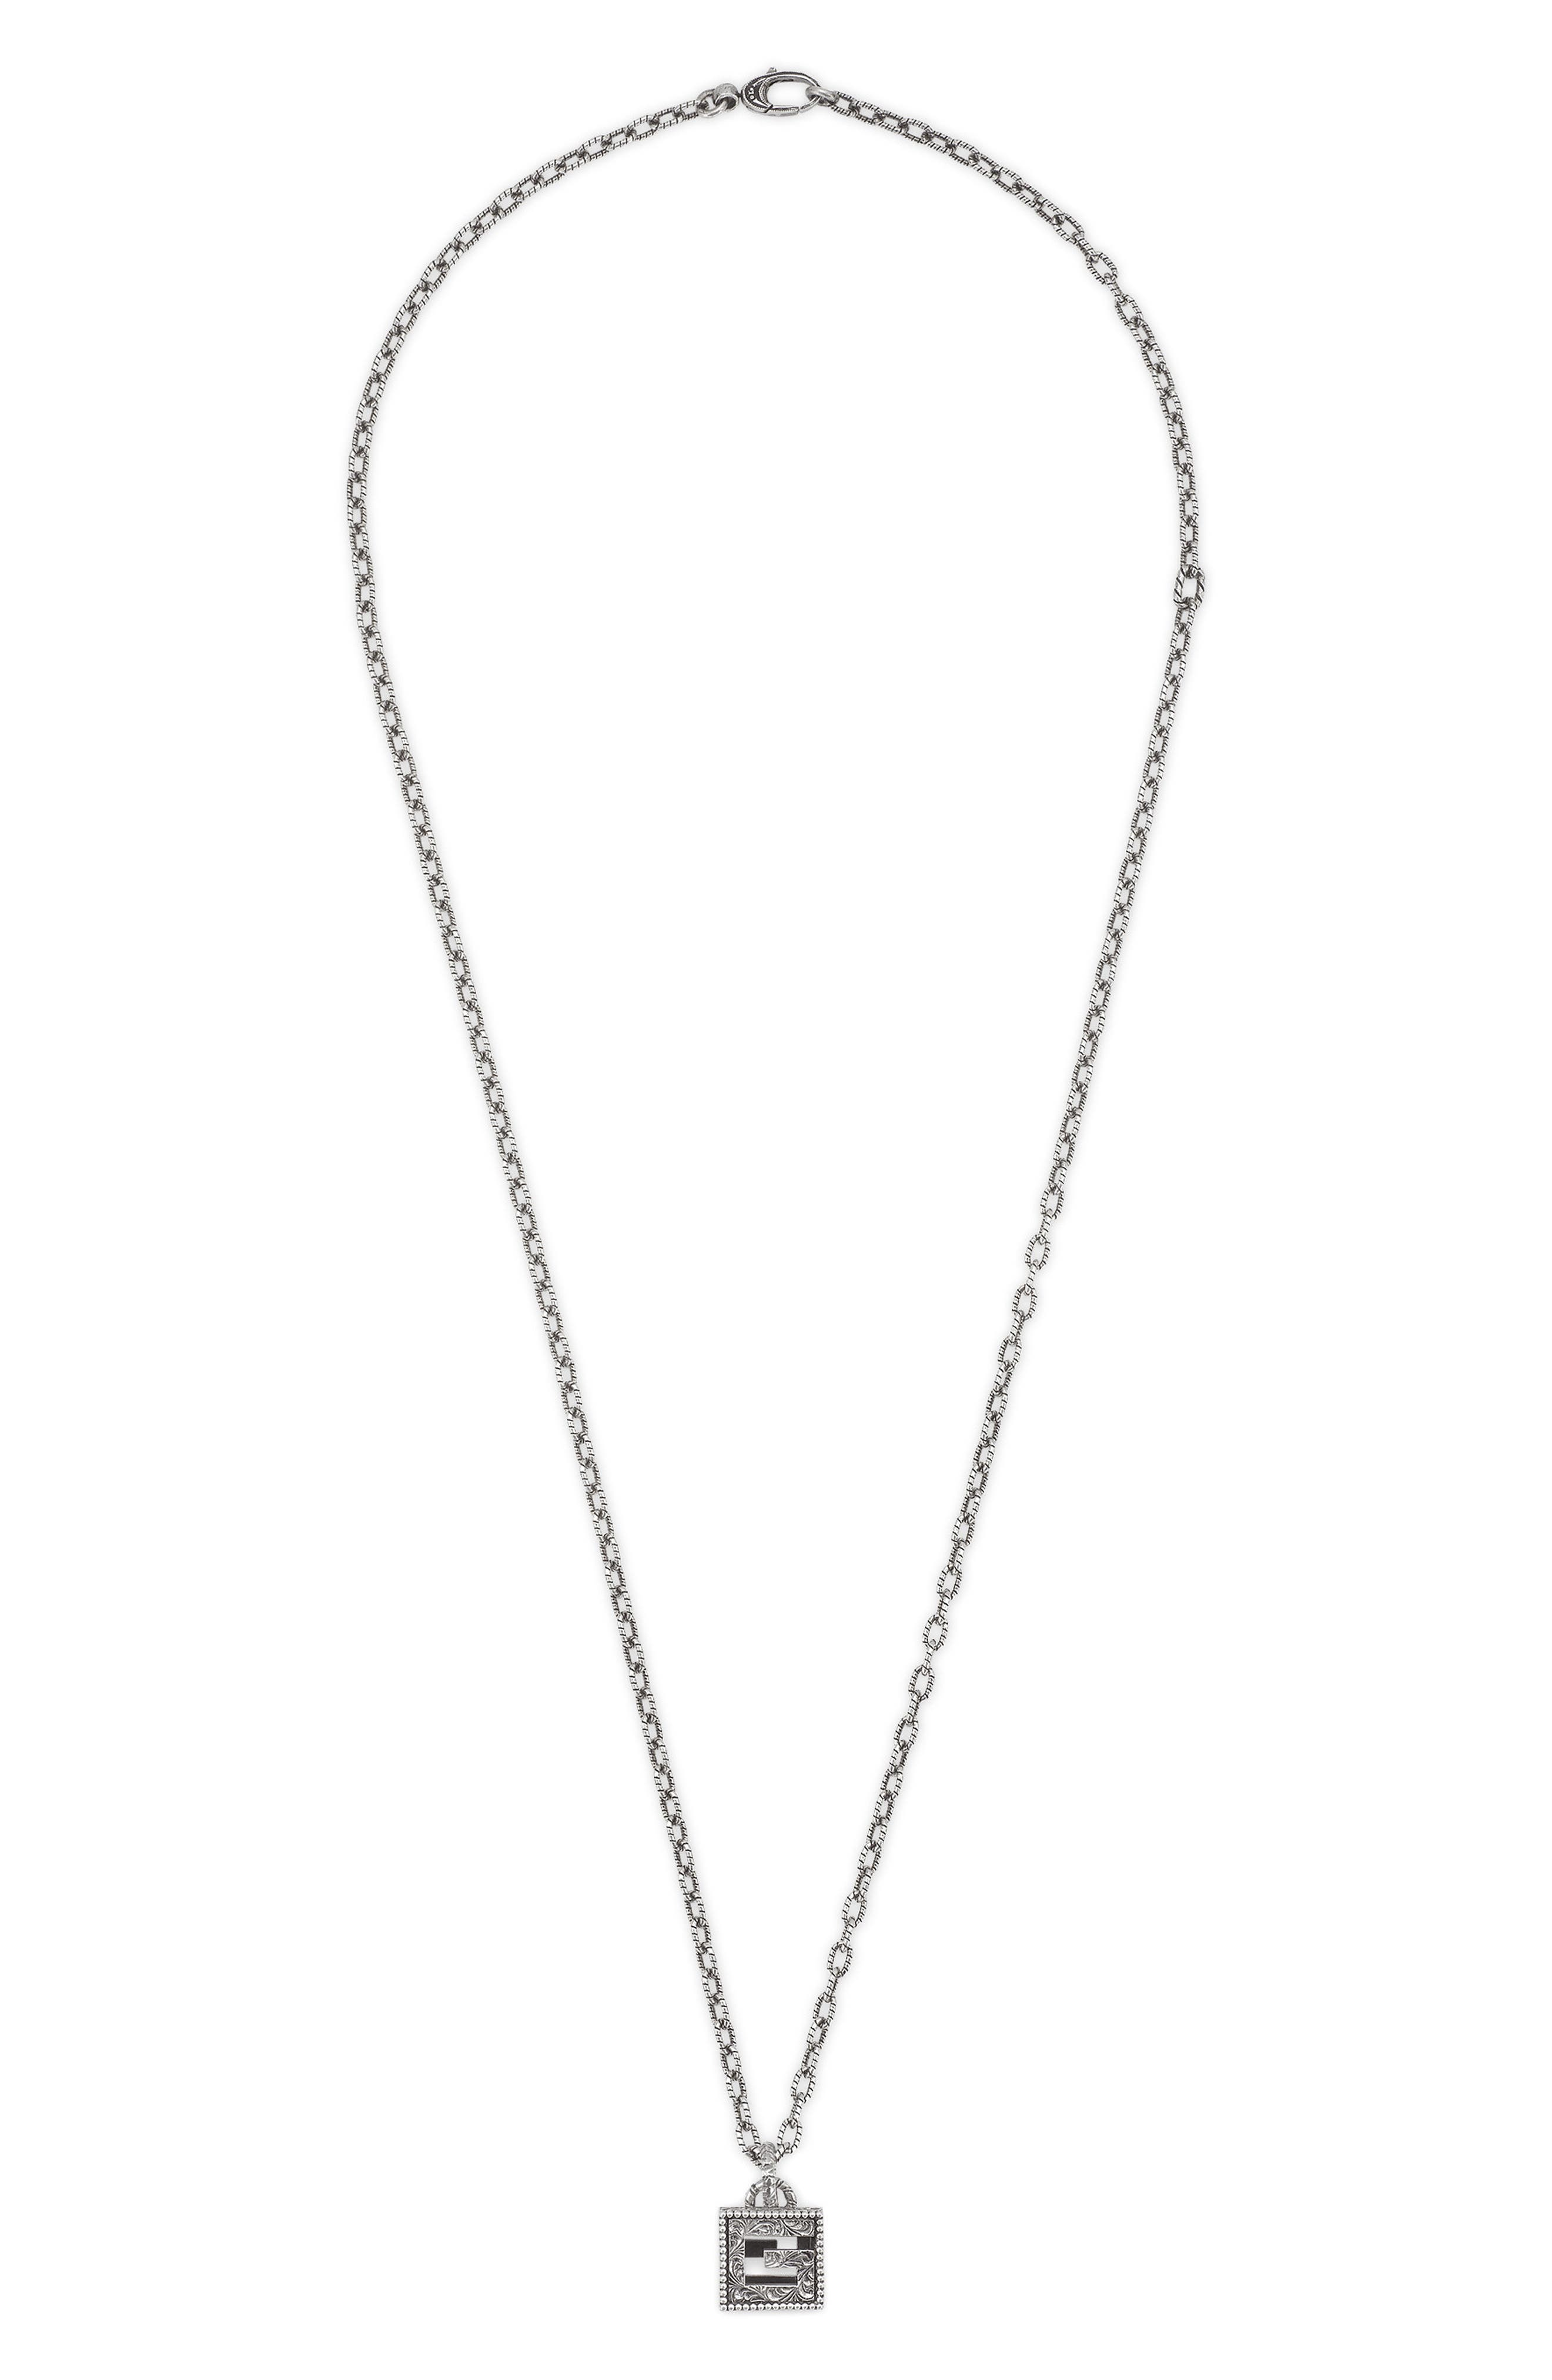 G-Cube Pendant Necklace,                             Main thumbnail 1, color,                             STERLING SILVER